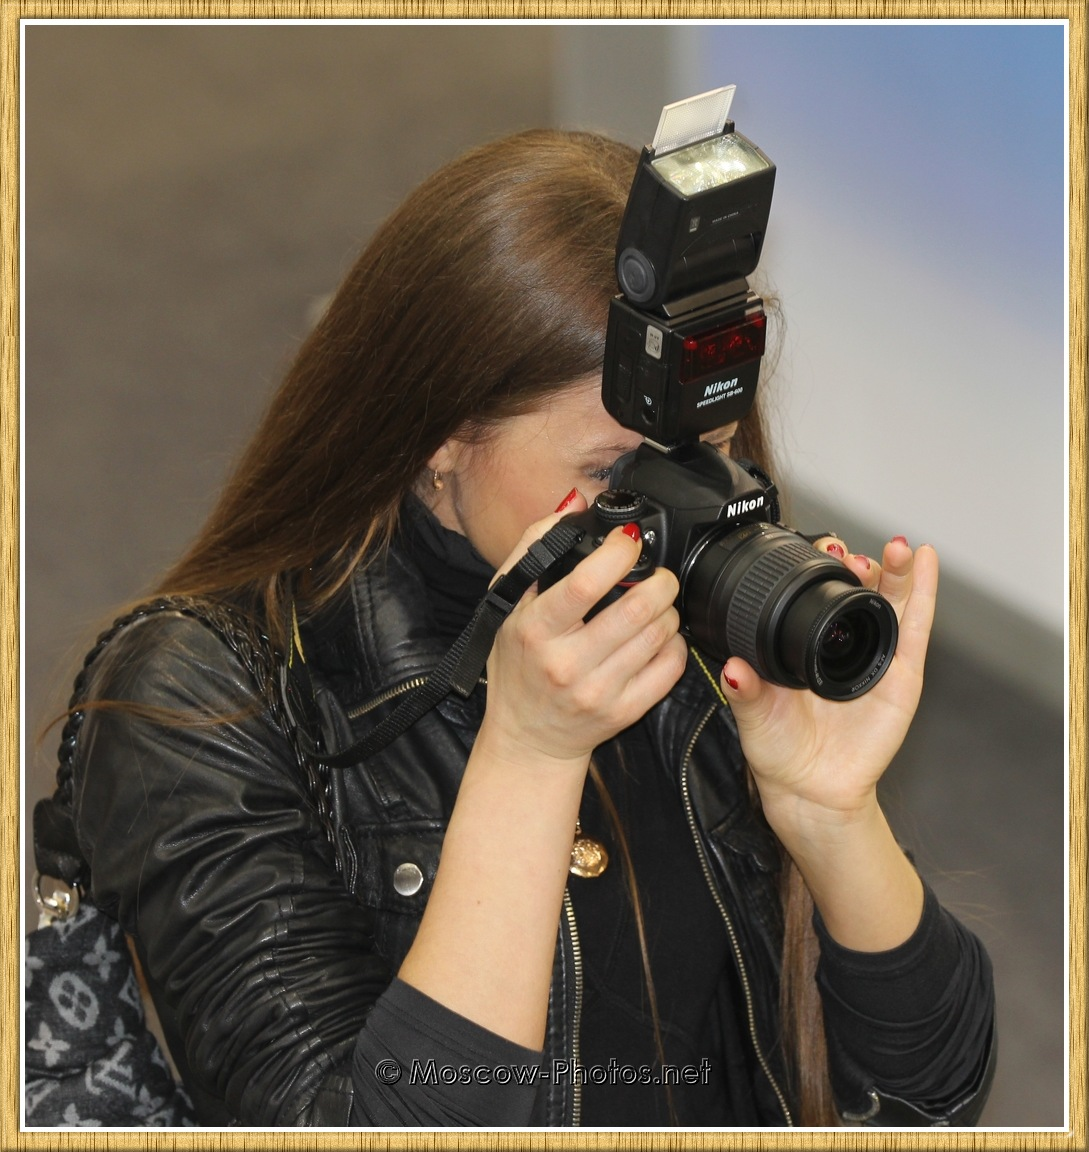 Nikon Photographer at Photoforum